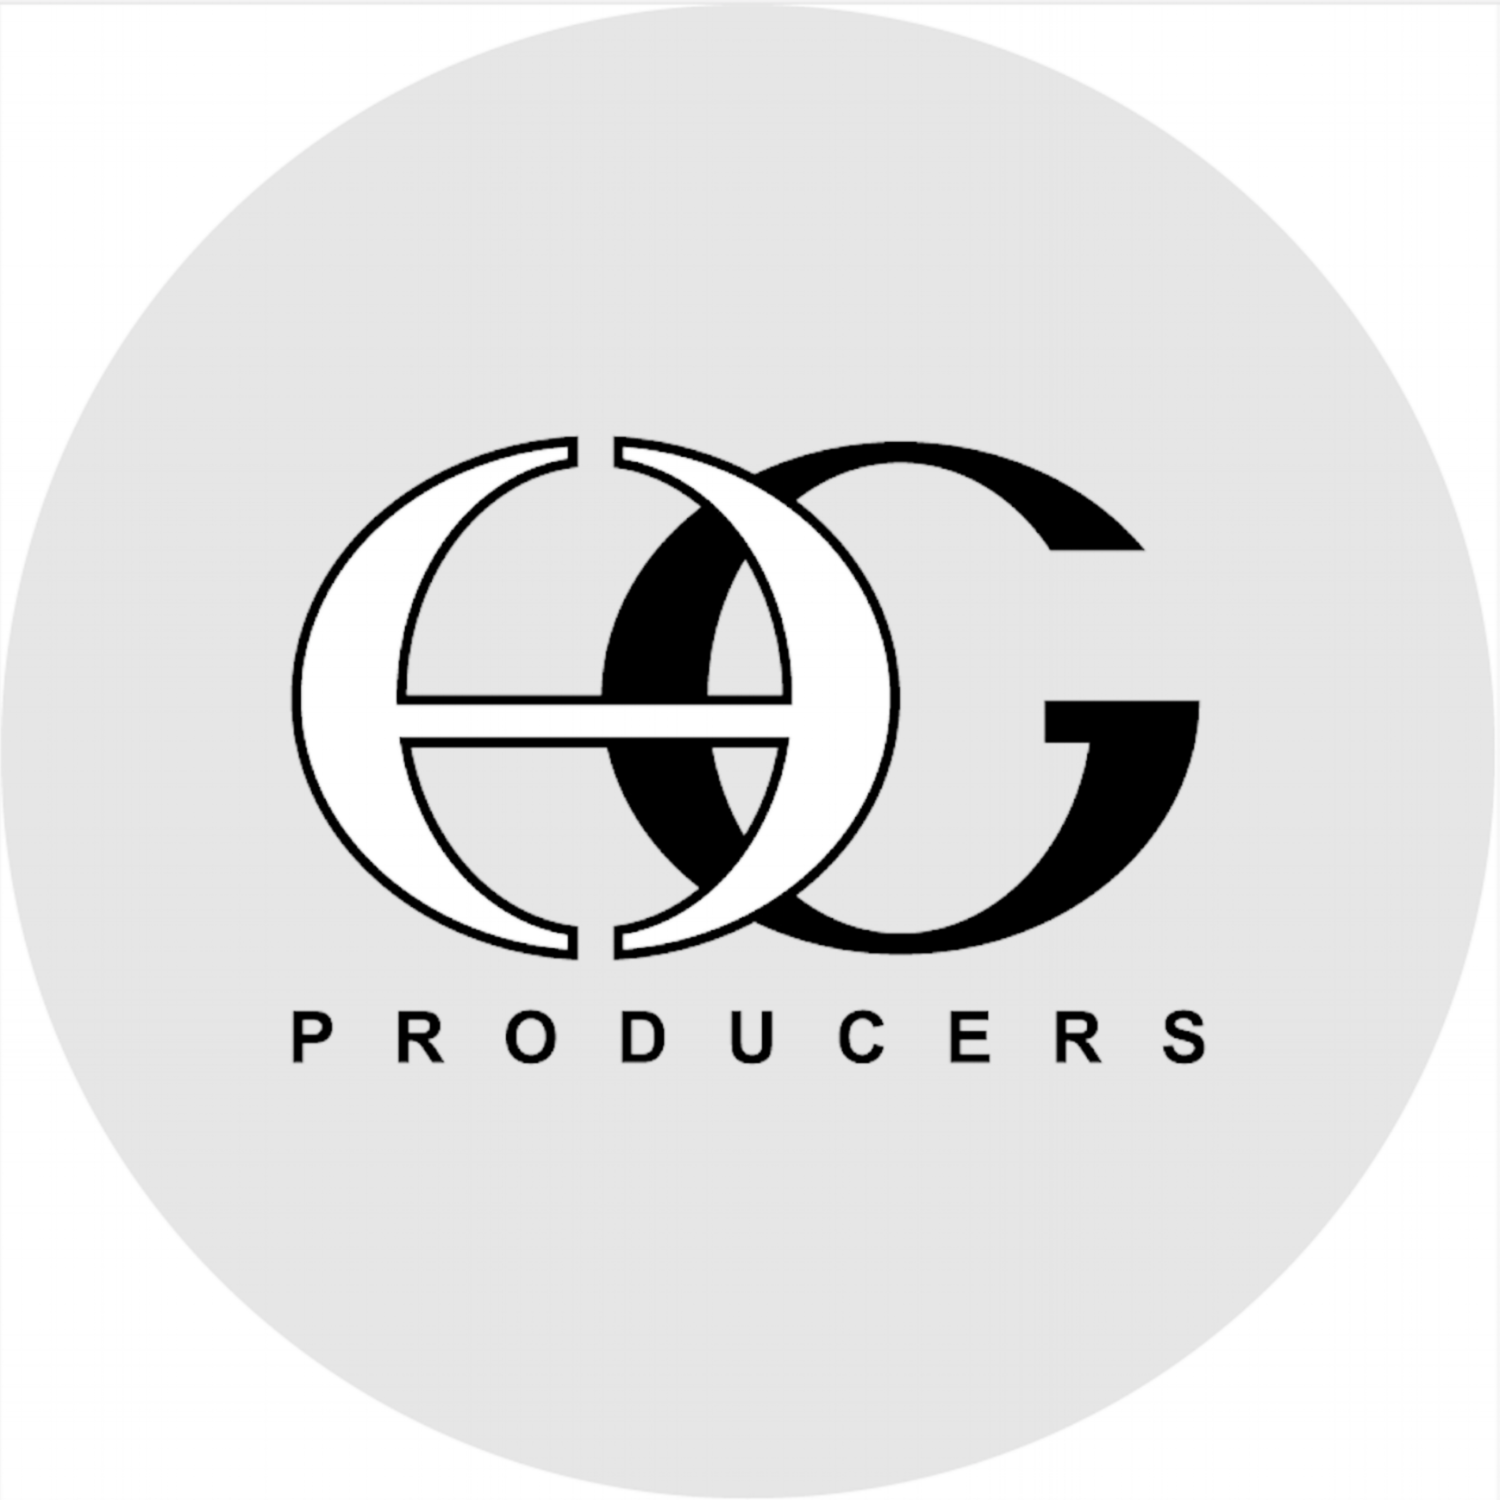 HG Producers